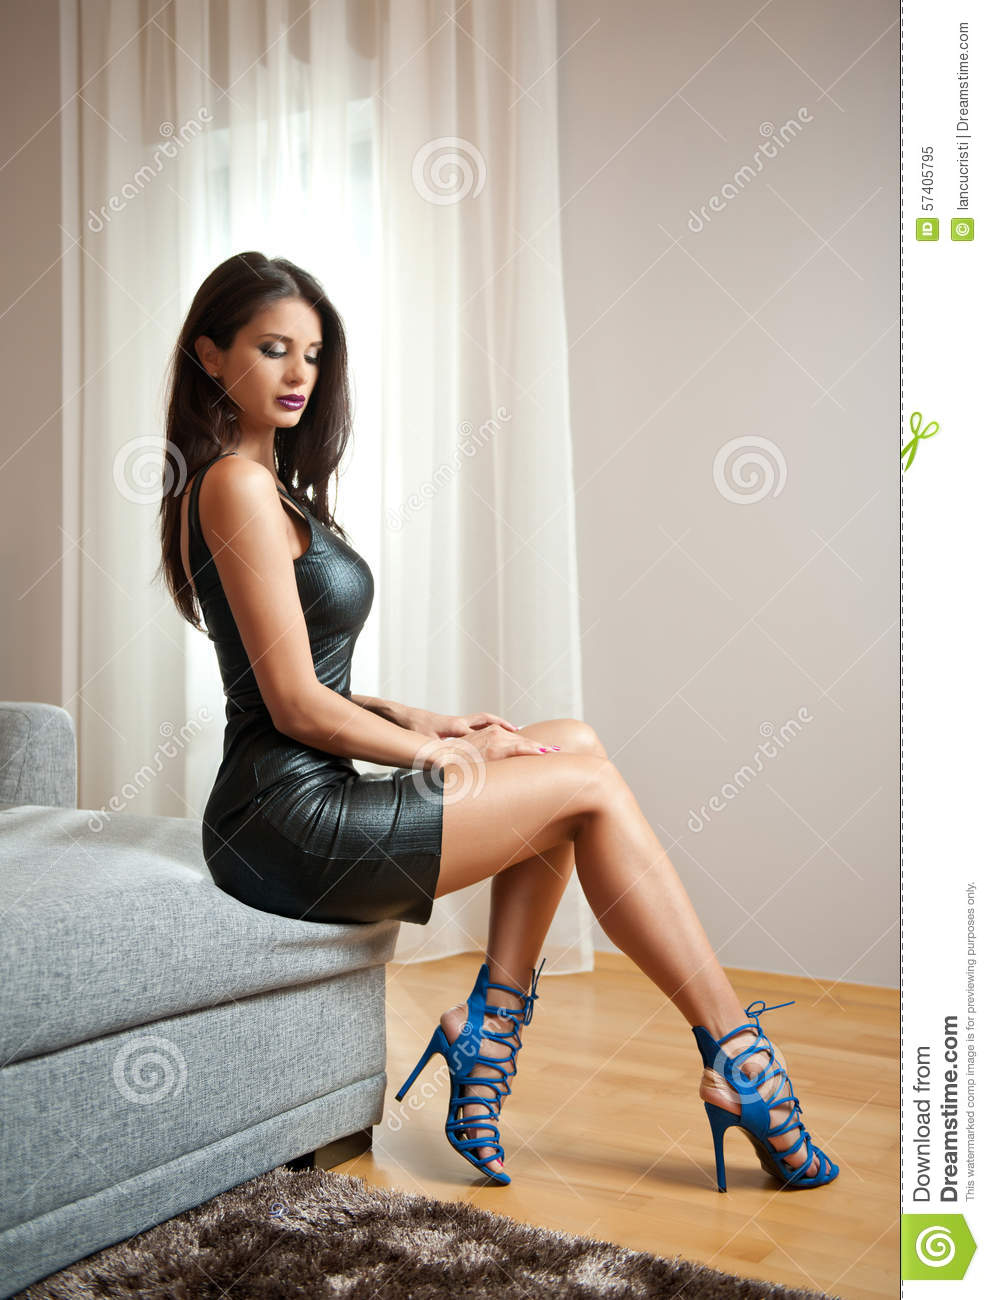 fc4d58c414 Beautiful brunette young woman wearing black leather short dress sitting on  bed. Fashionable female with